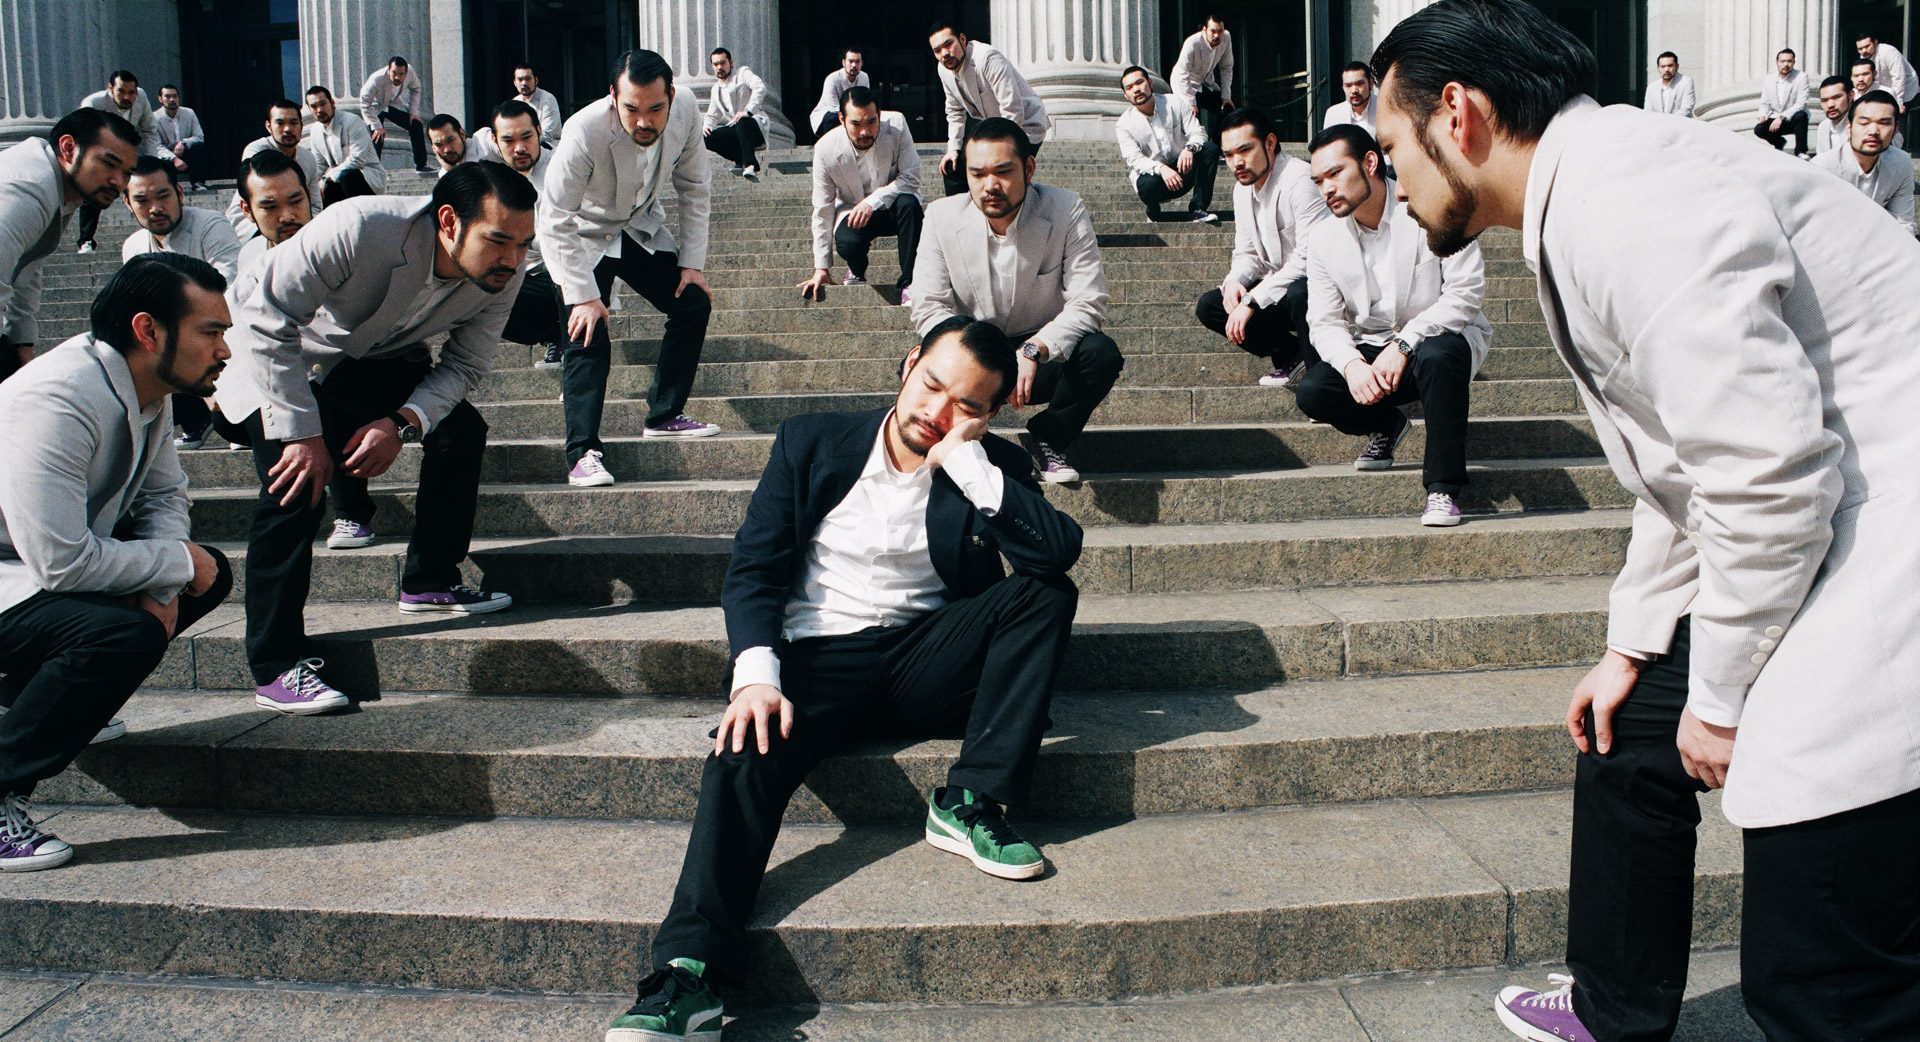 An asian in a dark suit sleeping on some steps, same group of asians in white suits staring at him.